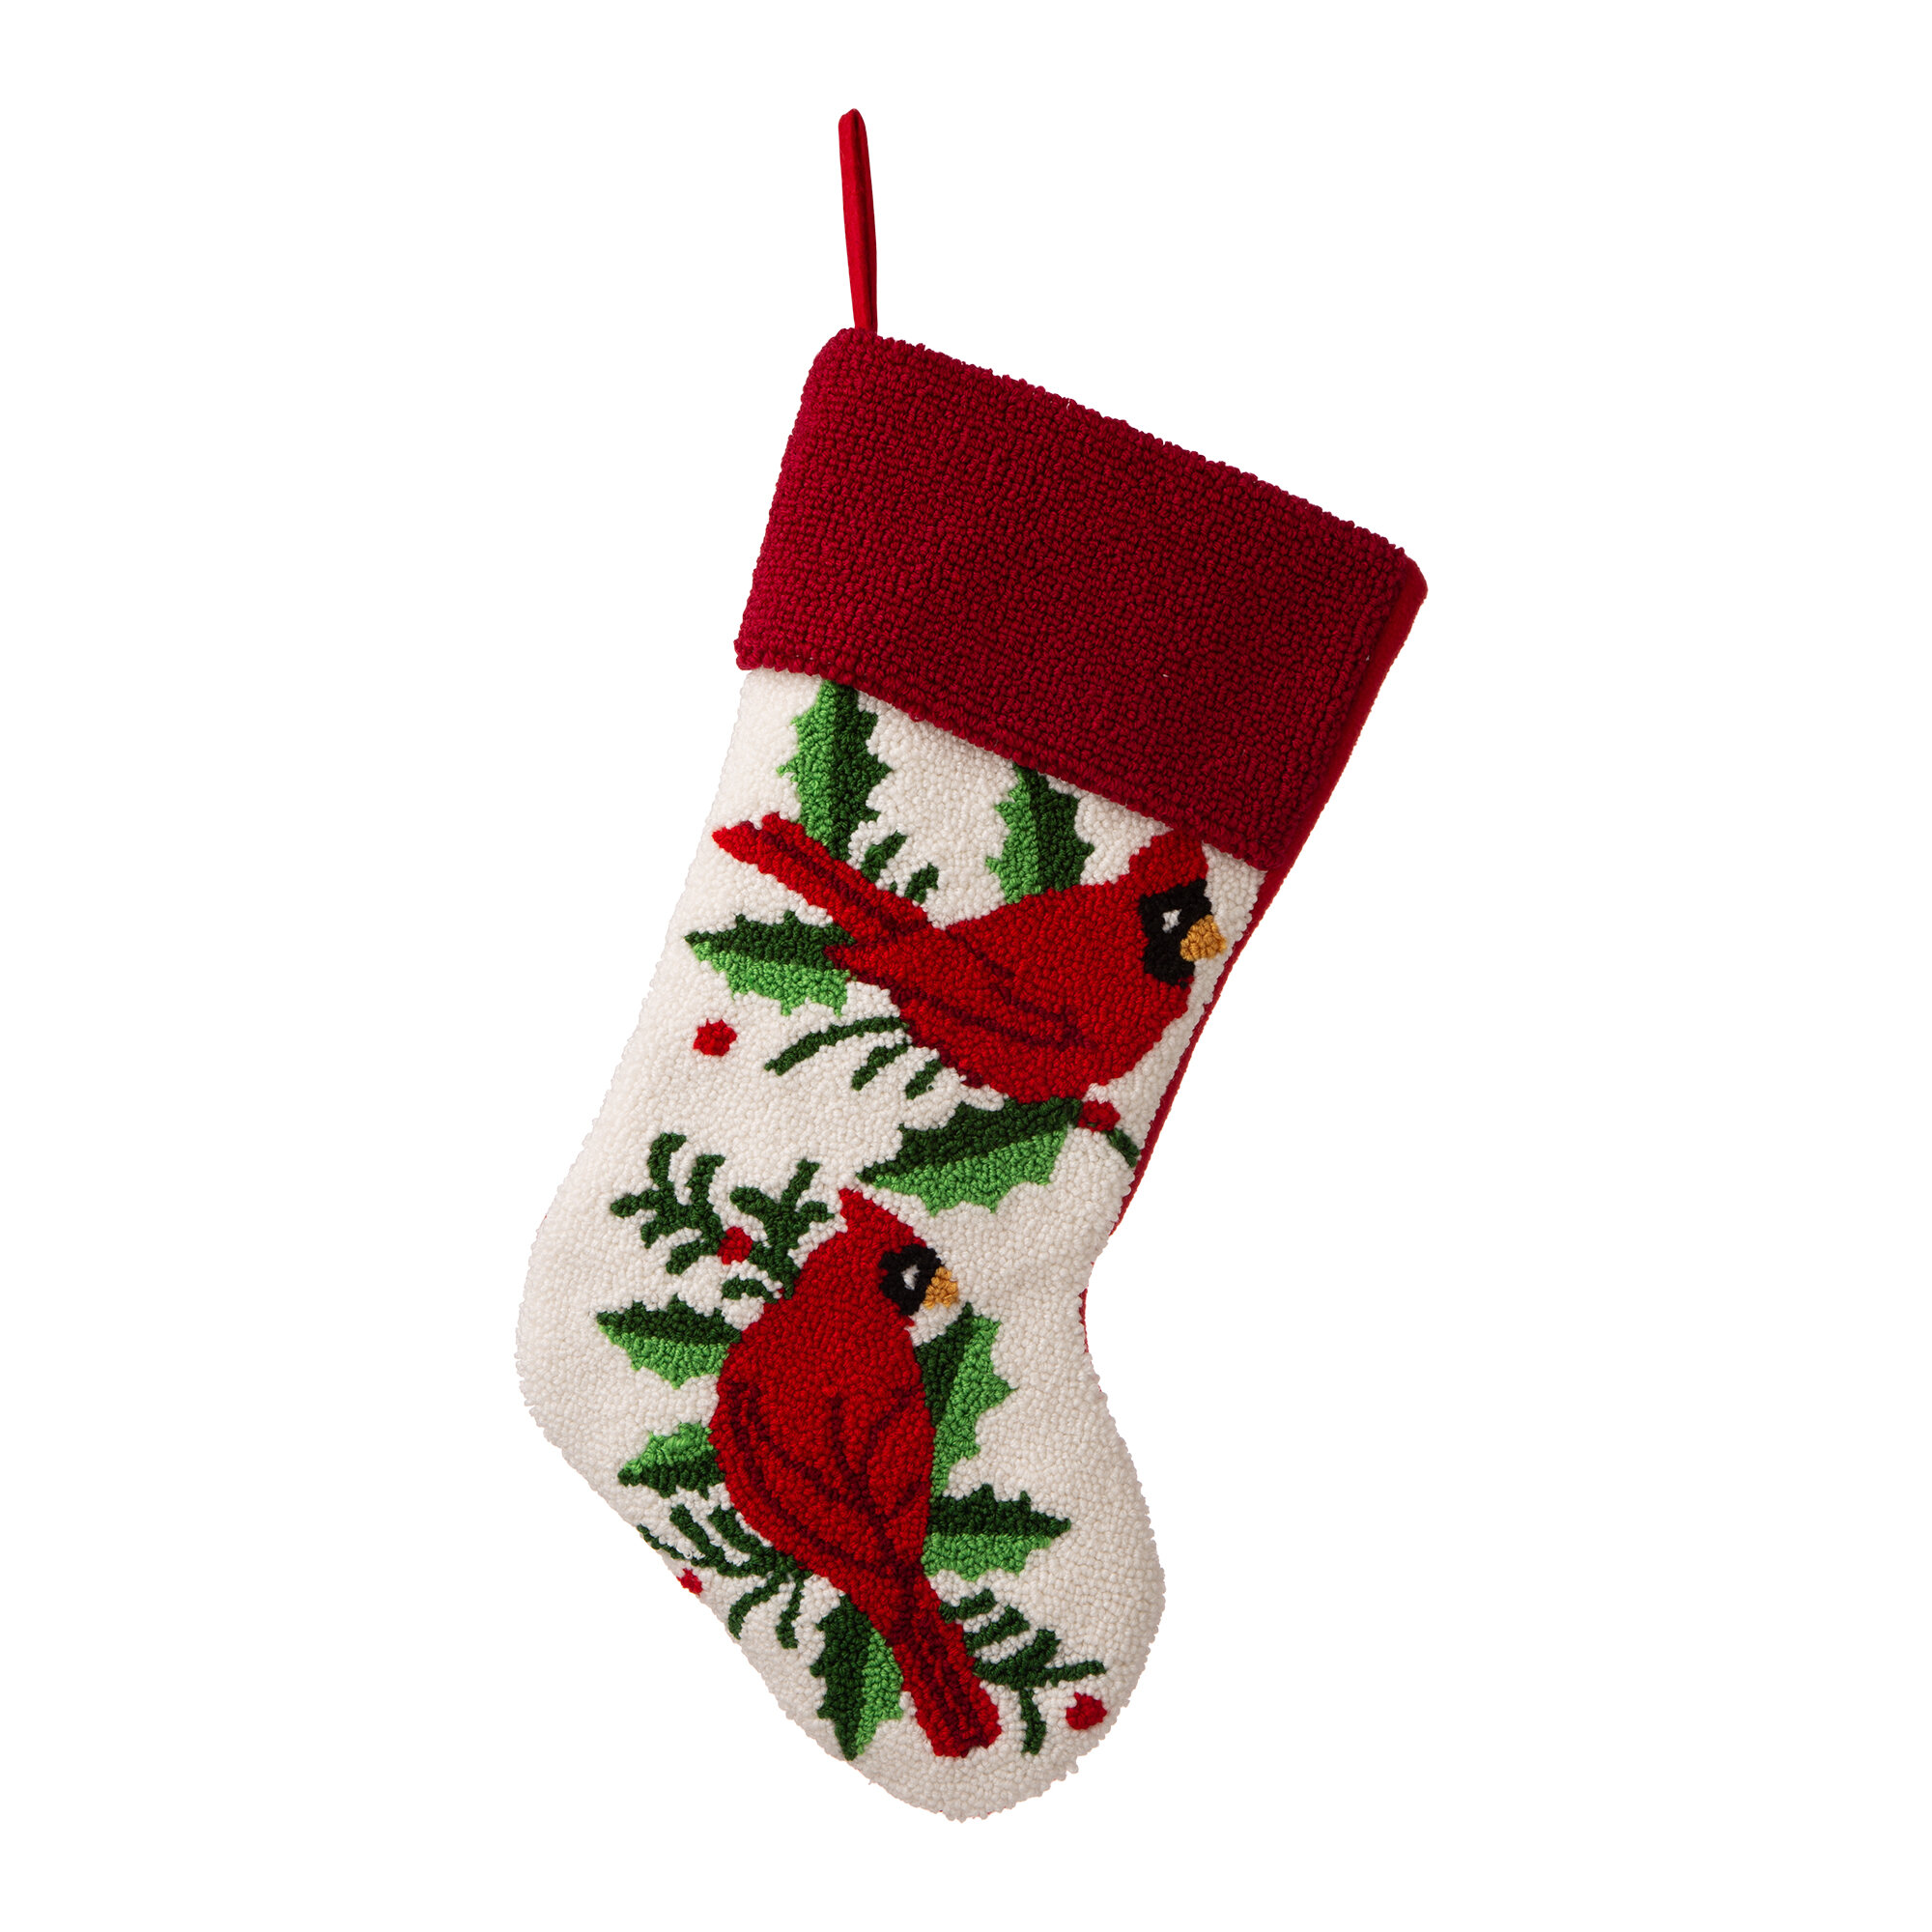 The Holiday Aisle Hooked Cardinal Stocking Wayfair